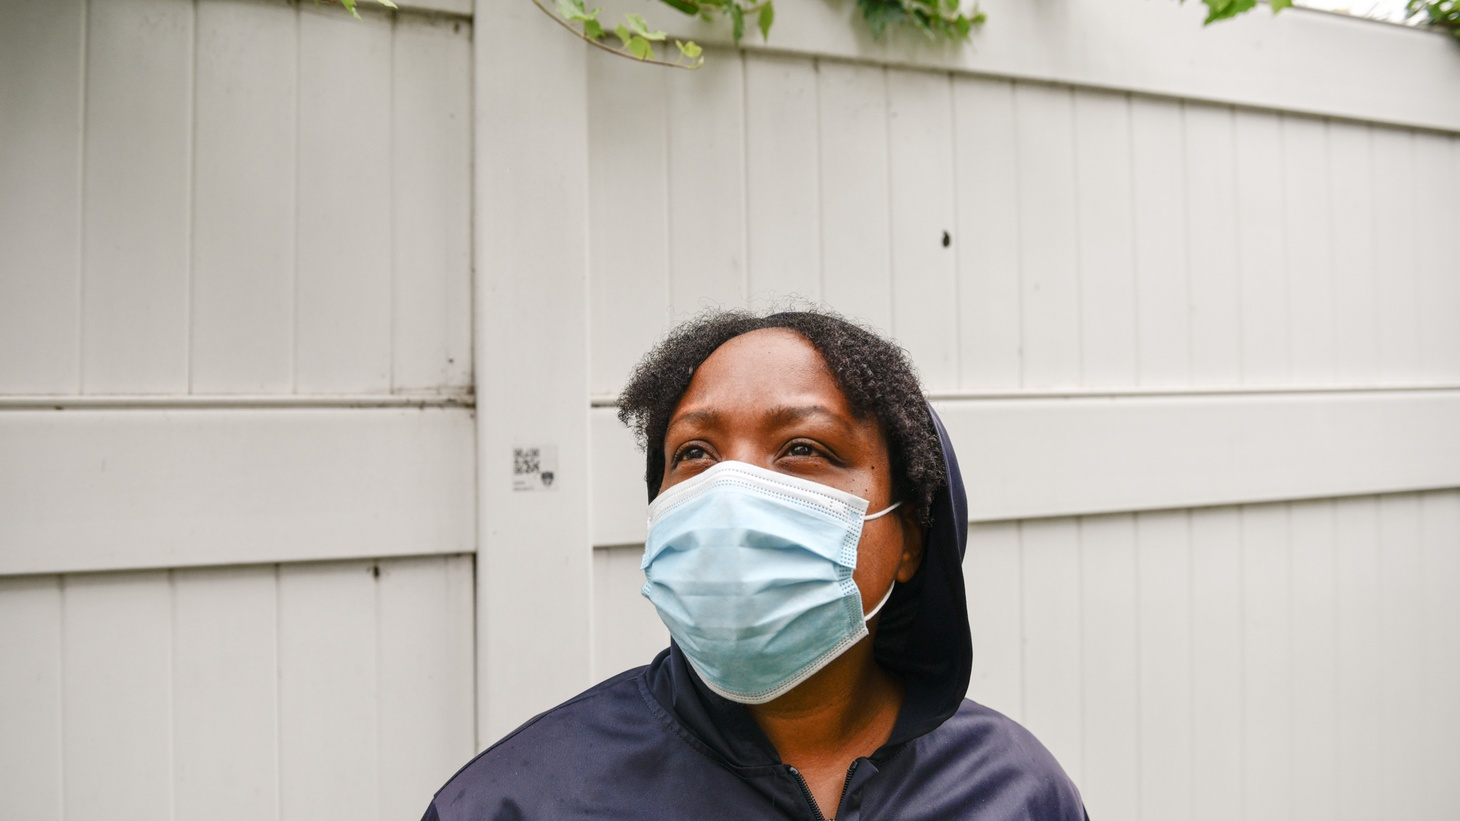 Rasheena McCord stands outside the hotel in Long Beach where McCord and her kids are living, on July 26, 2021. According to McCord, she has had to sleep on park benches after getting evicted one year ago. Housing Long Beach has assisted McCord in finding temporary housing.